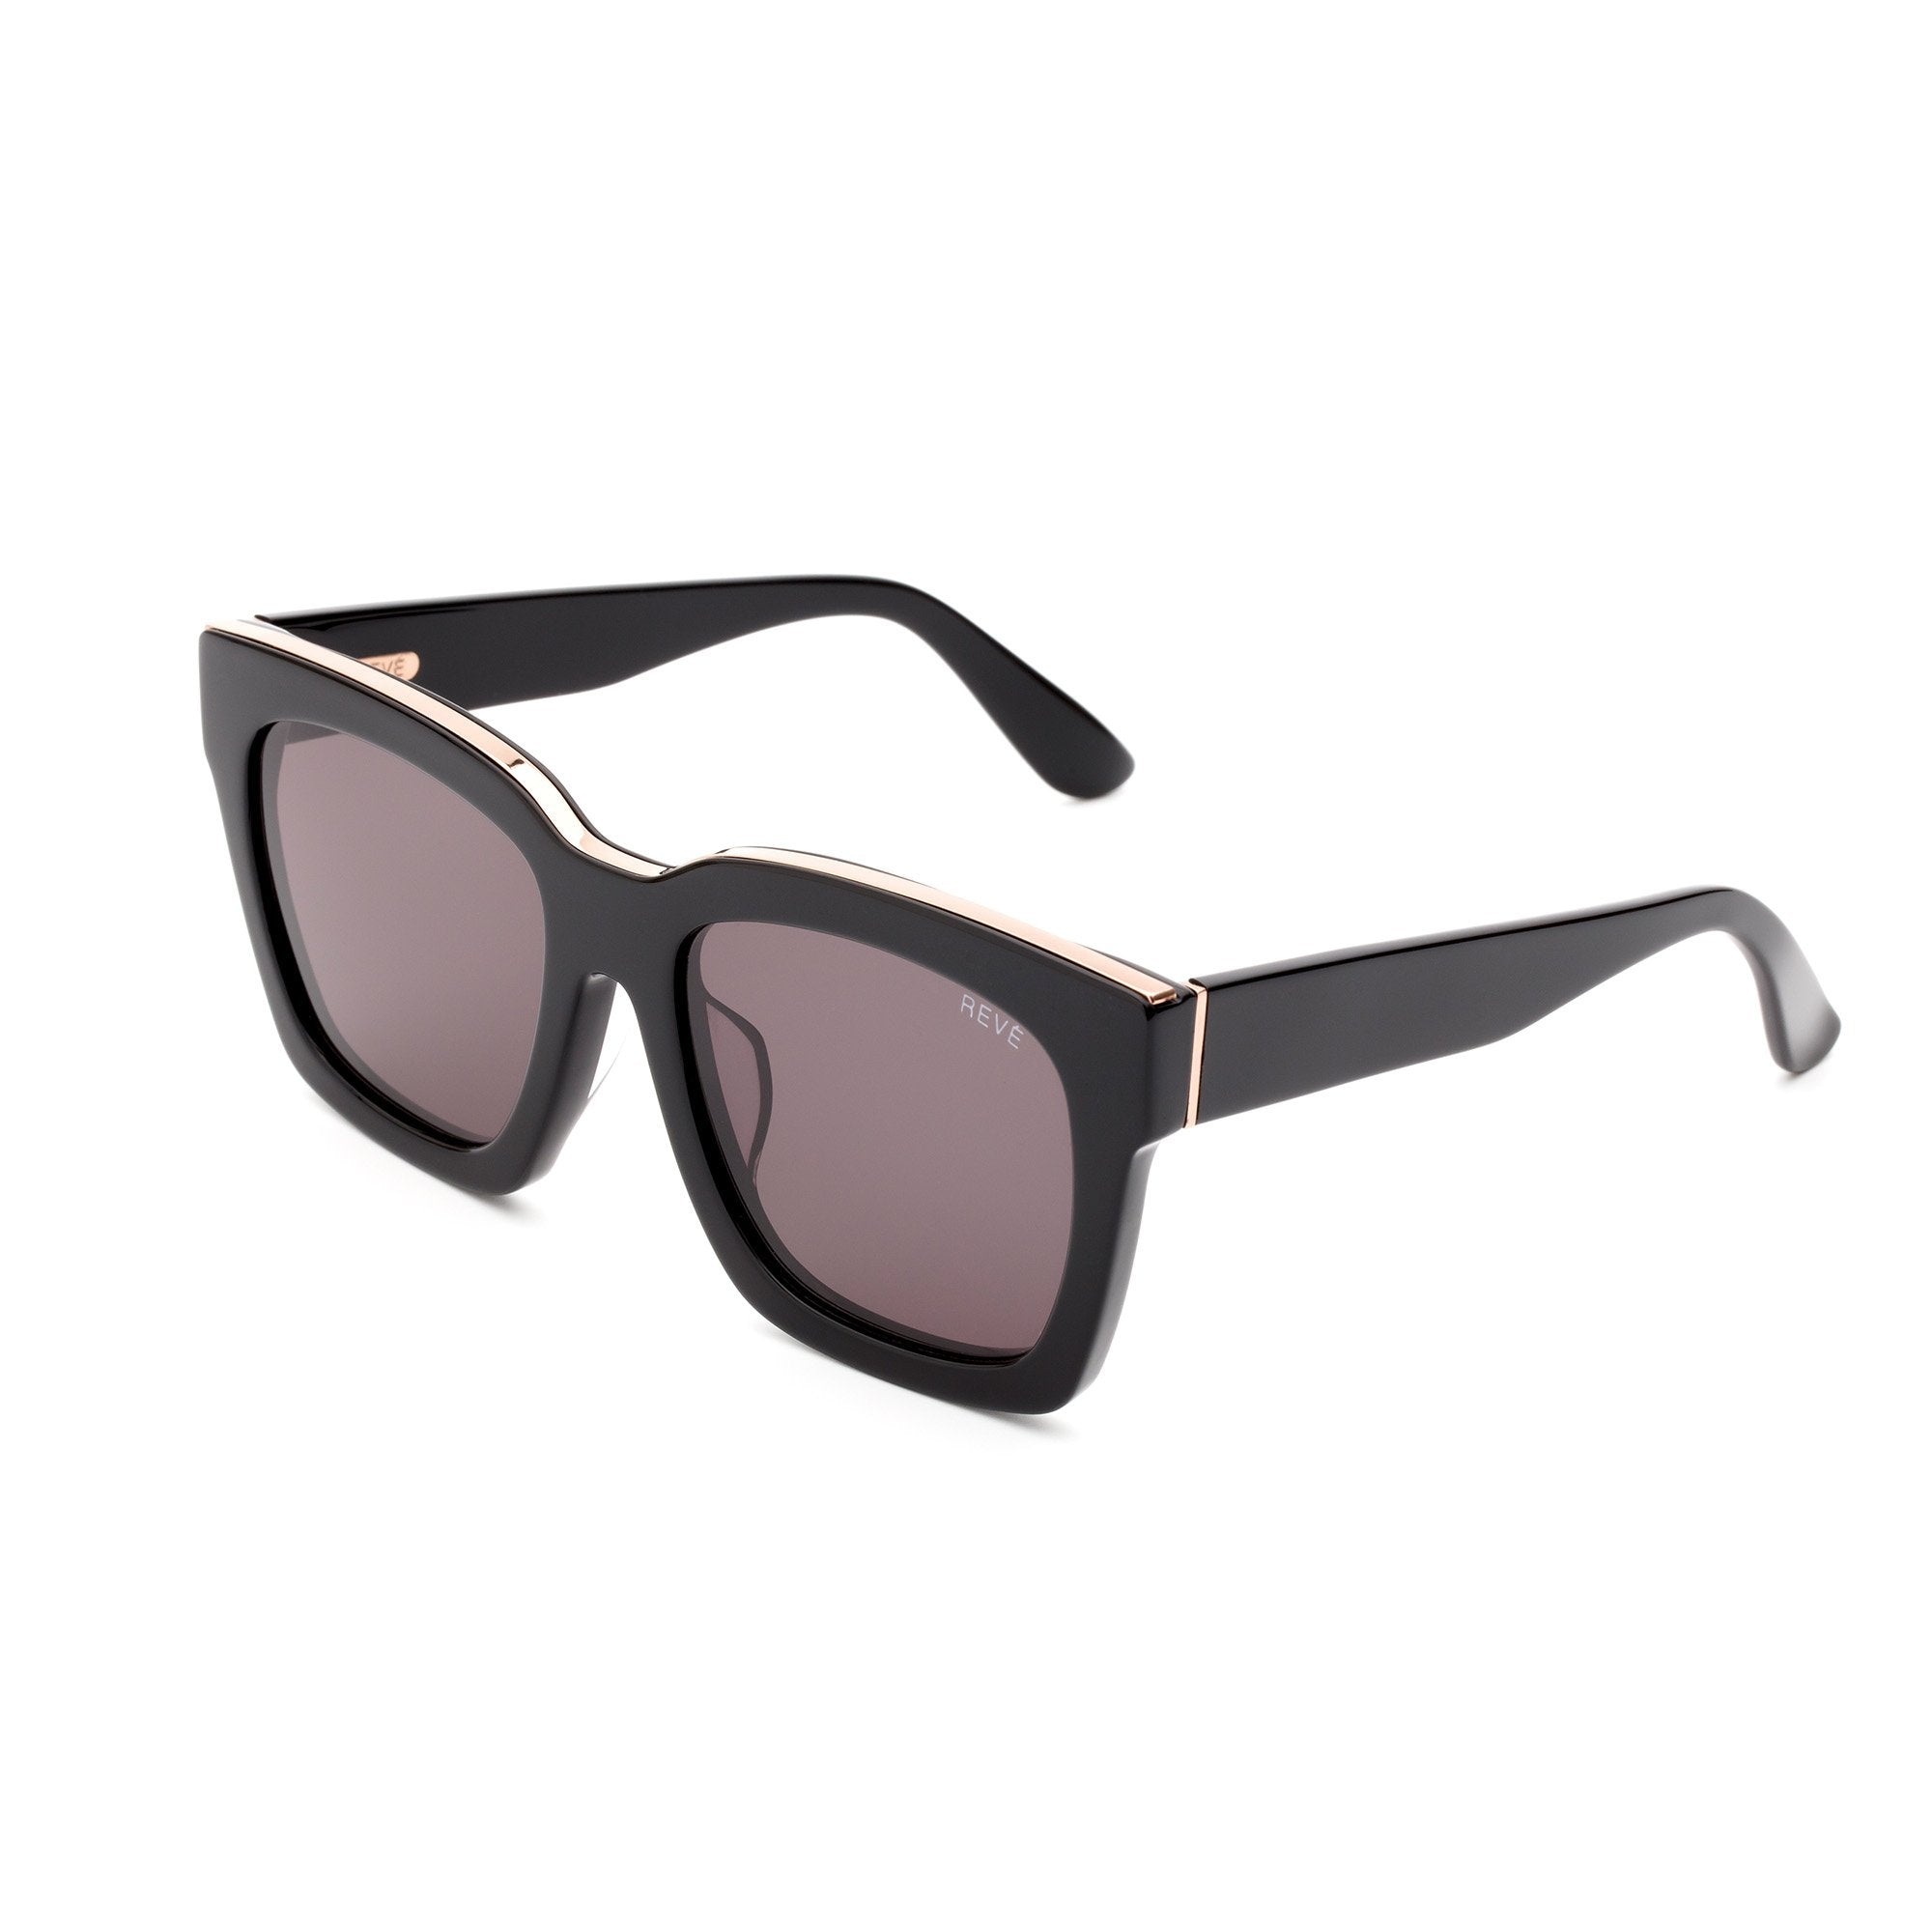 REVE by RENE alphabet sunglasses